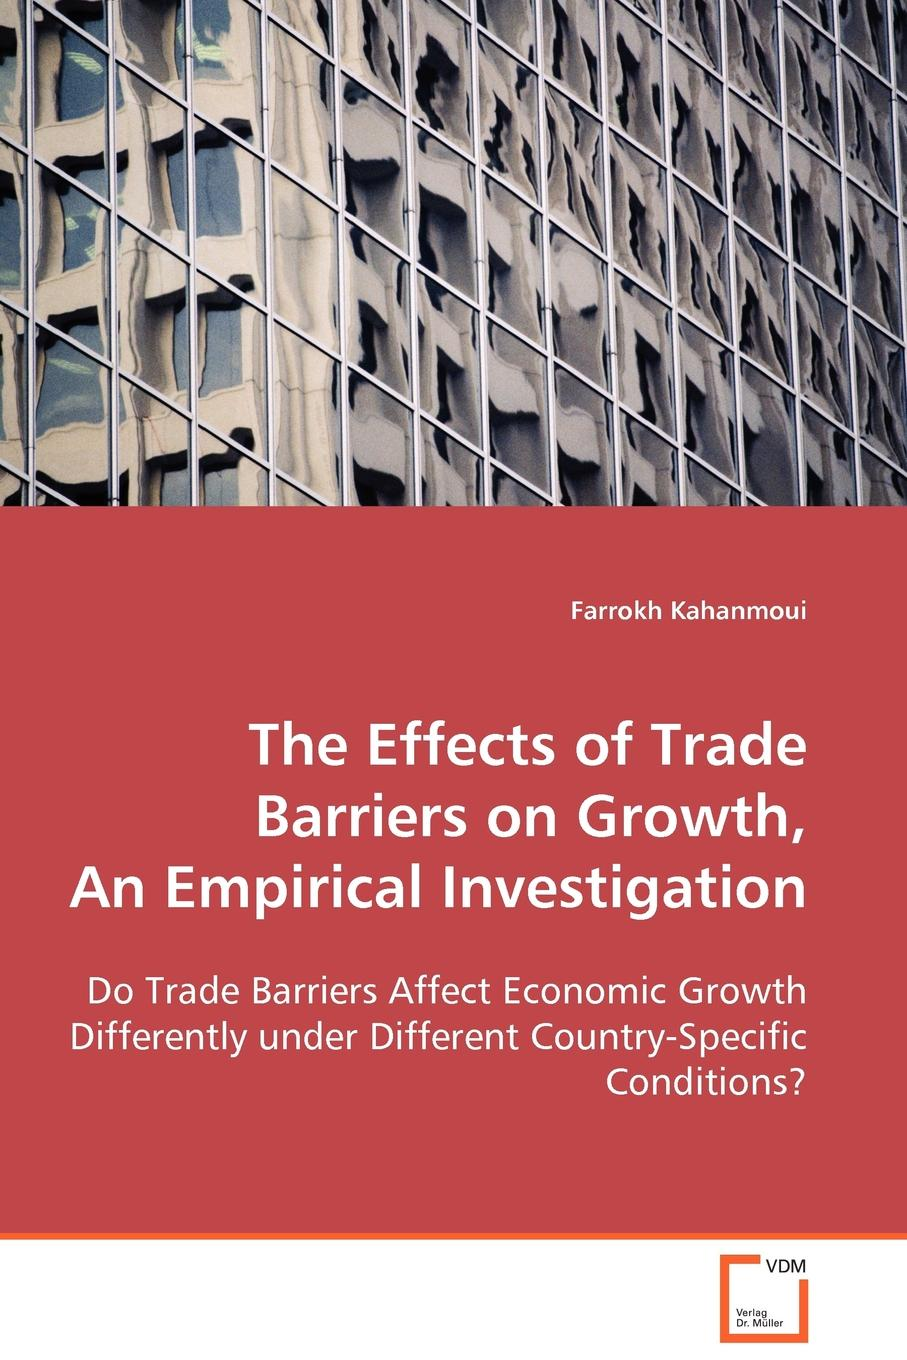 kahanmoui farrokh The Effects of Trade Barriers on Growth, An Empirical Investigation barriers